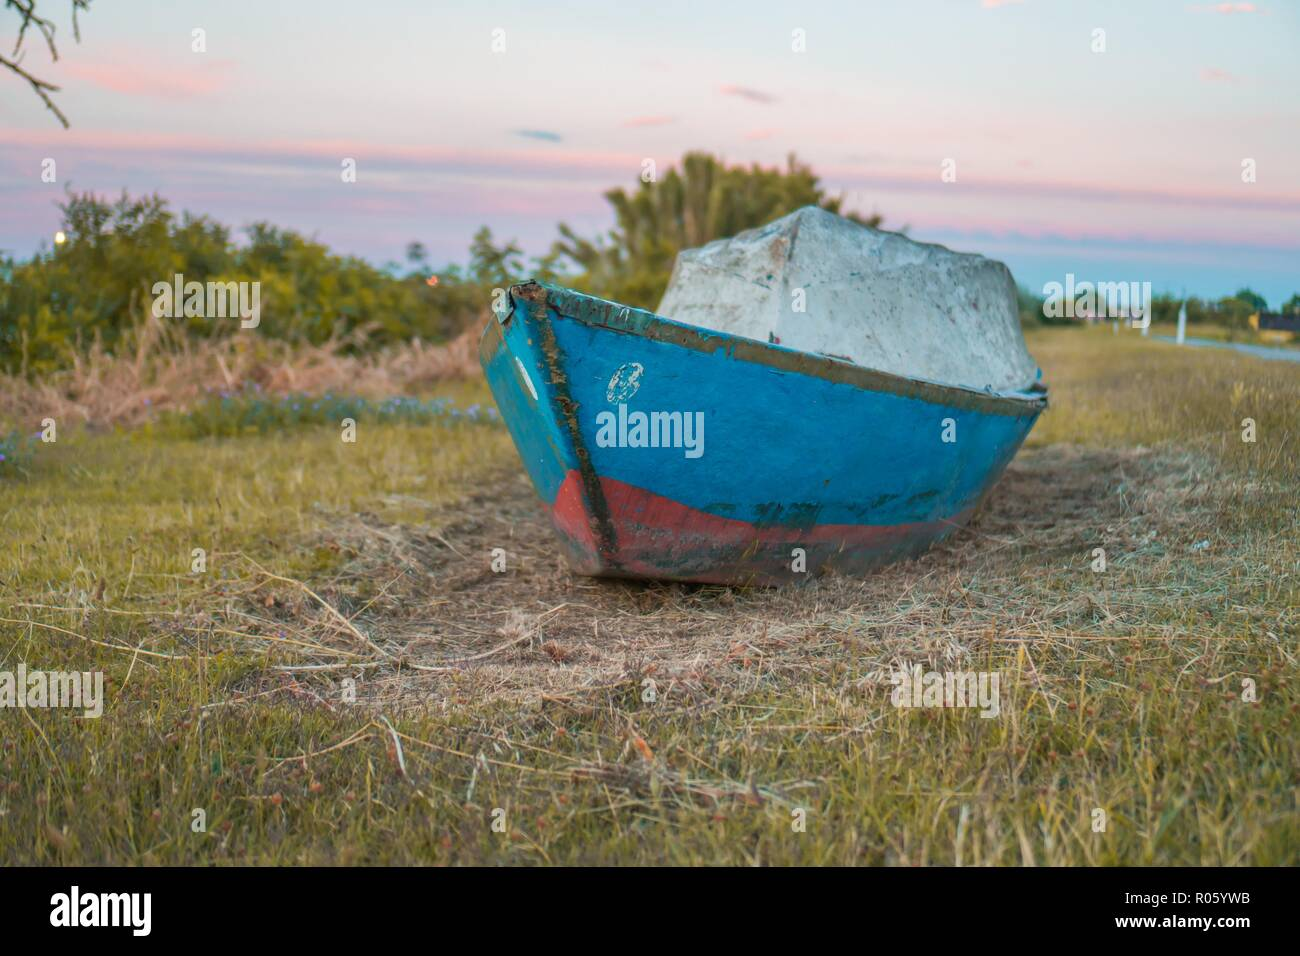 Two wooden boats abandoned in the middle of nature - Stock Image